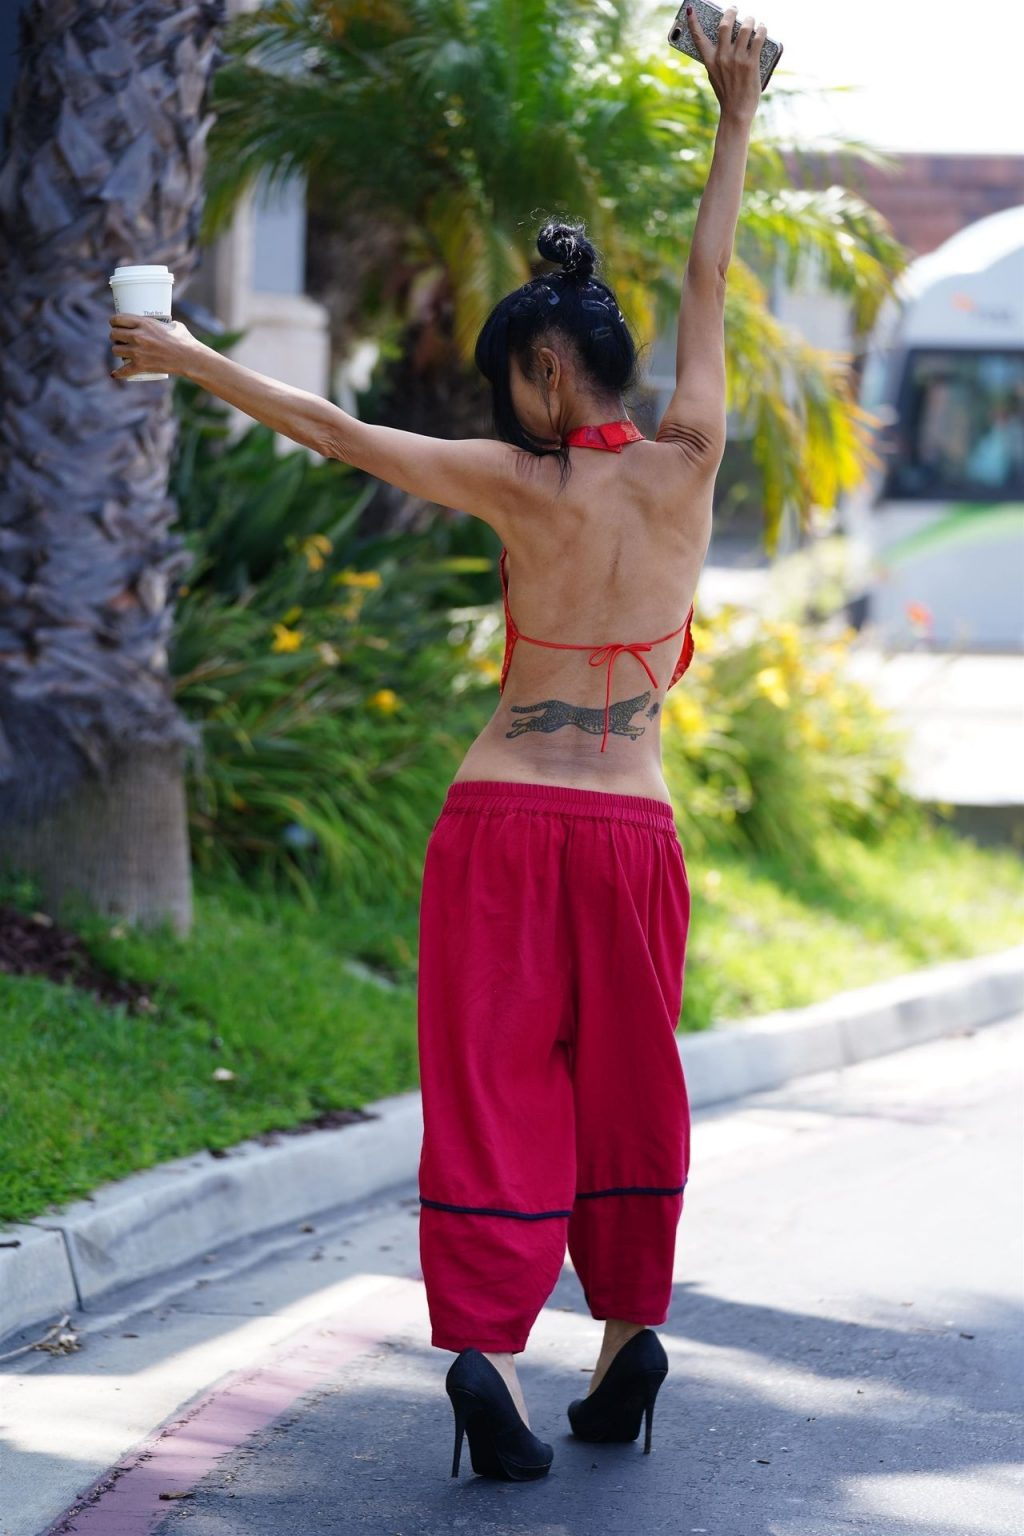 Bai Ling Shows Her Sexy Slim Body in West Hollywood (83 Photos)